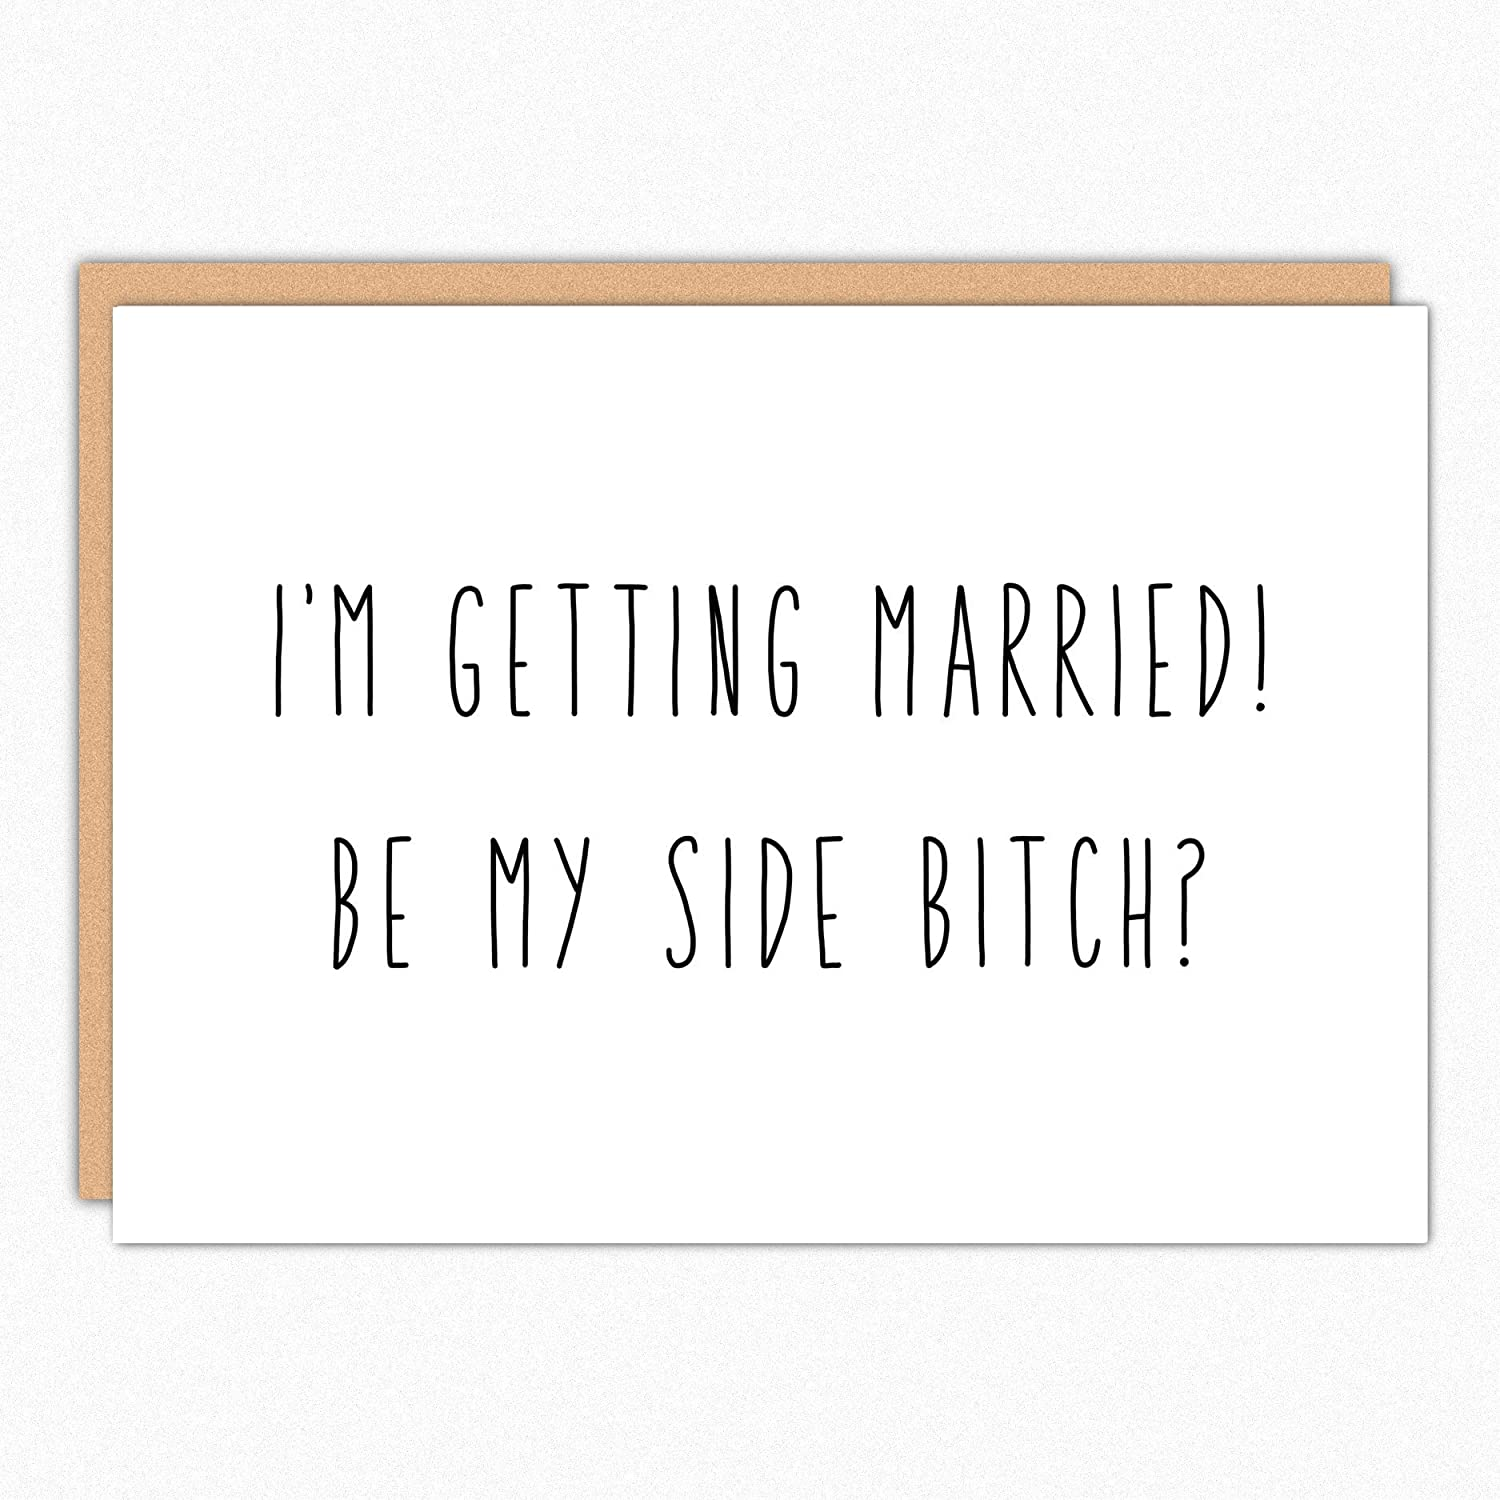 187 Be My Side Bitch Funny Bridesmaid Ask Card Will You Be My Bridesmaid Card Wedding Party Proposal Card.